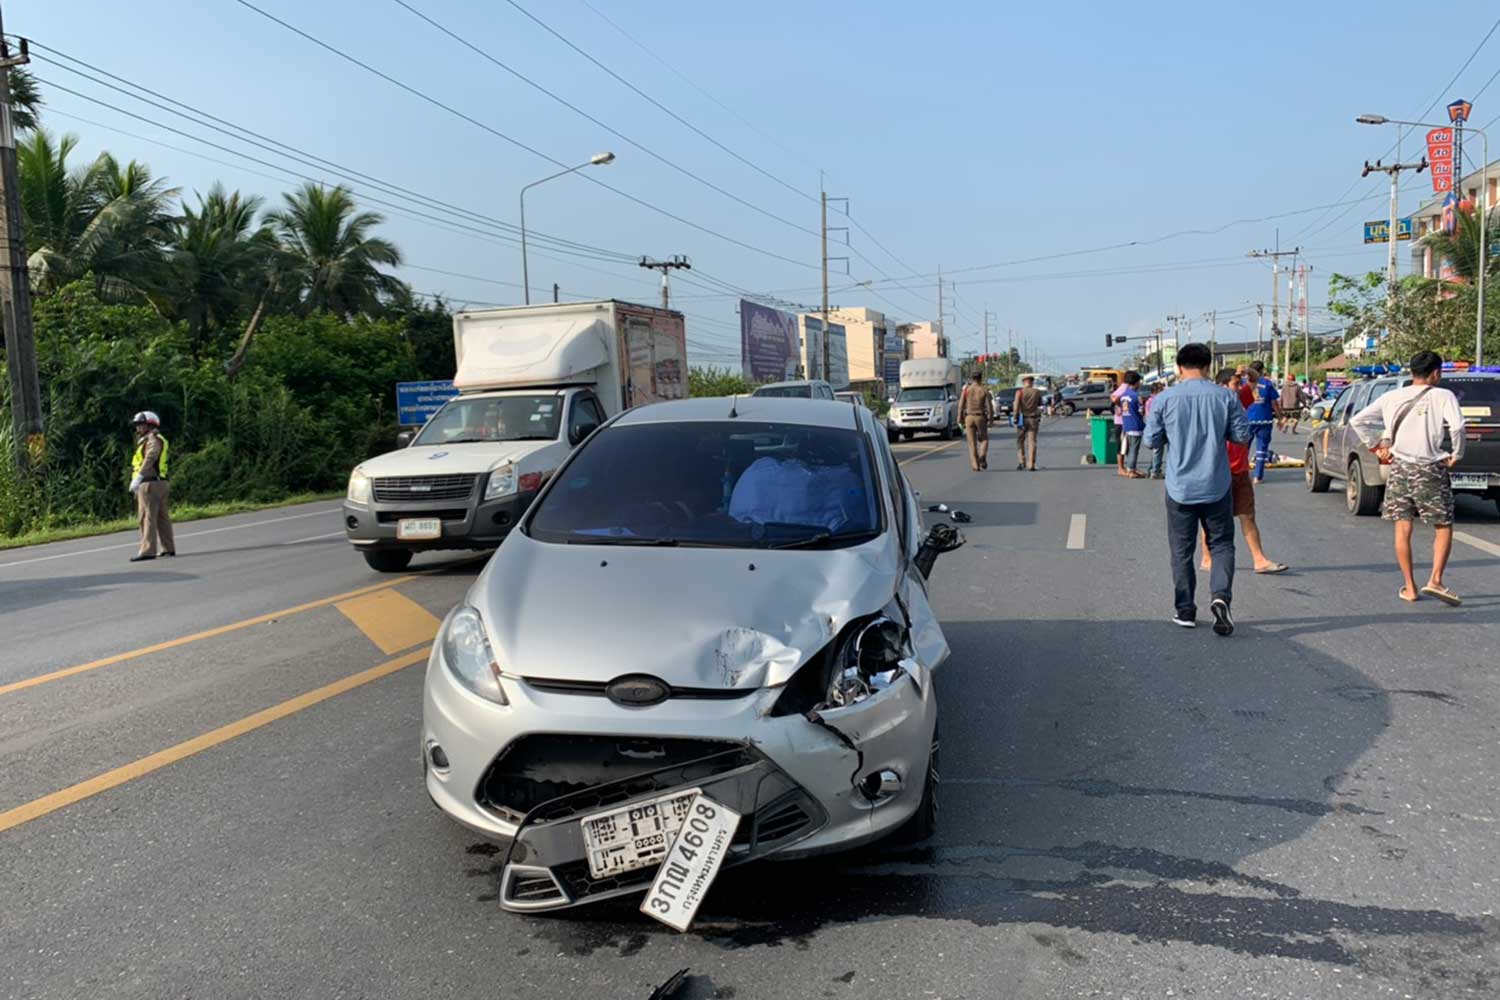 The car involved in the fatal crash with a motorcycle that killed a mother and her 19-month-old son in Muang district of Nakhon Si Thammarat on Wednesday morning. (Photo by Nujaree Raekrun)